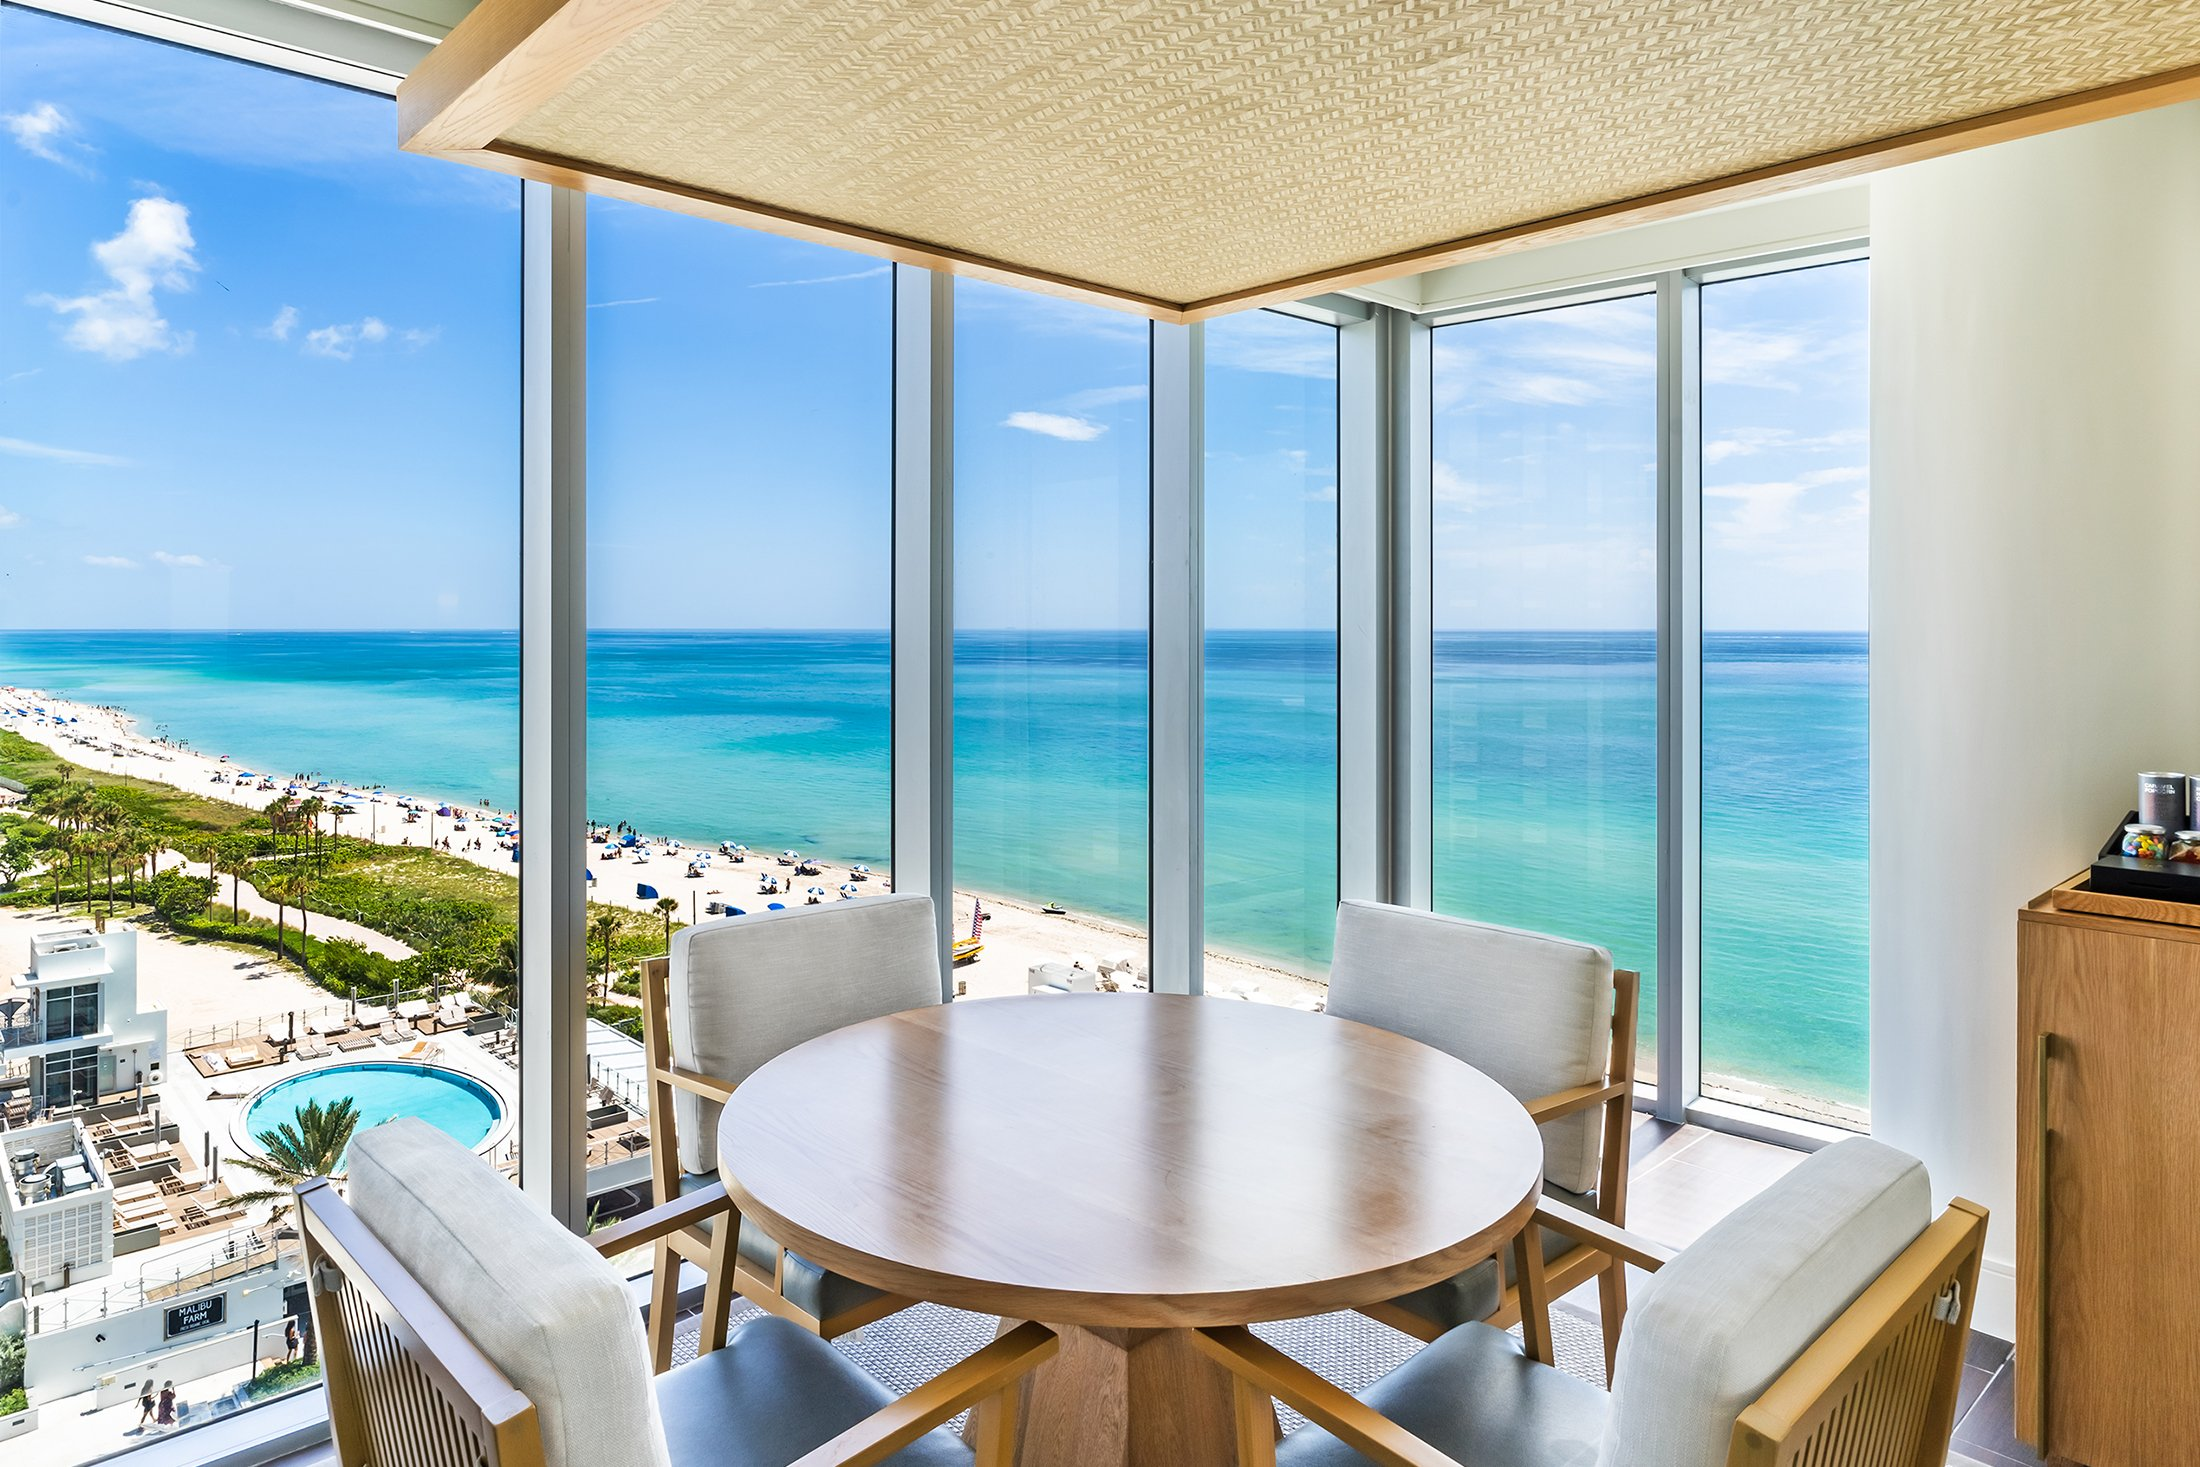 A view of the beach from a room at Eden Roc